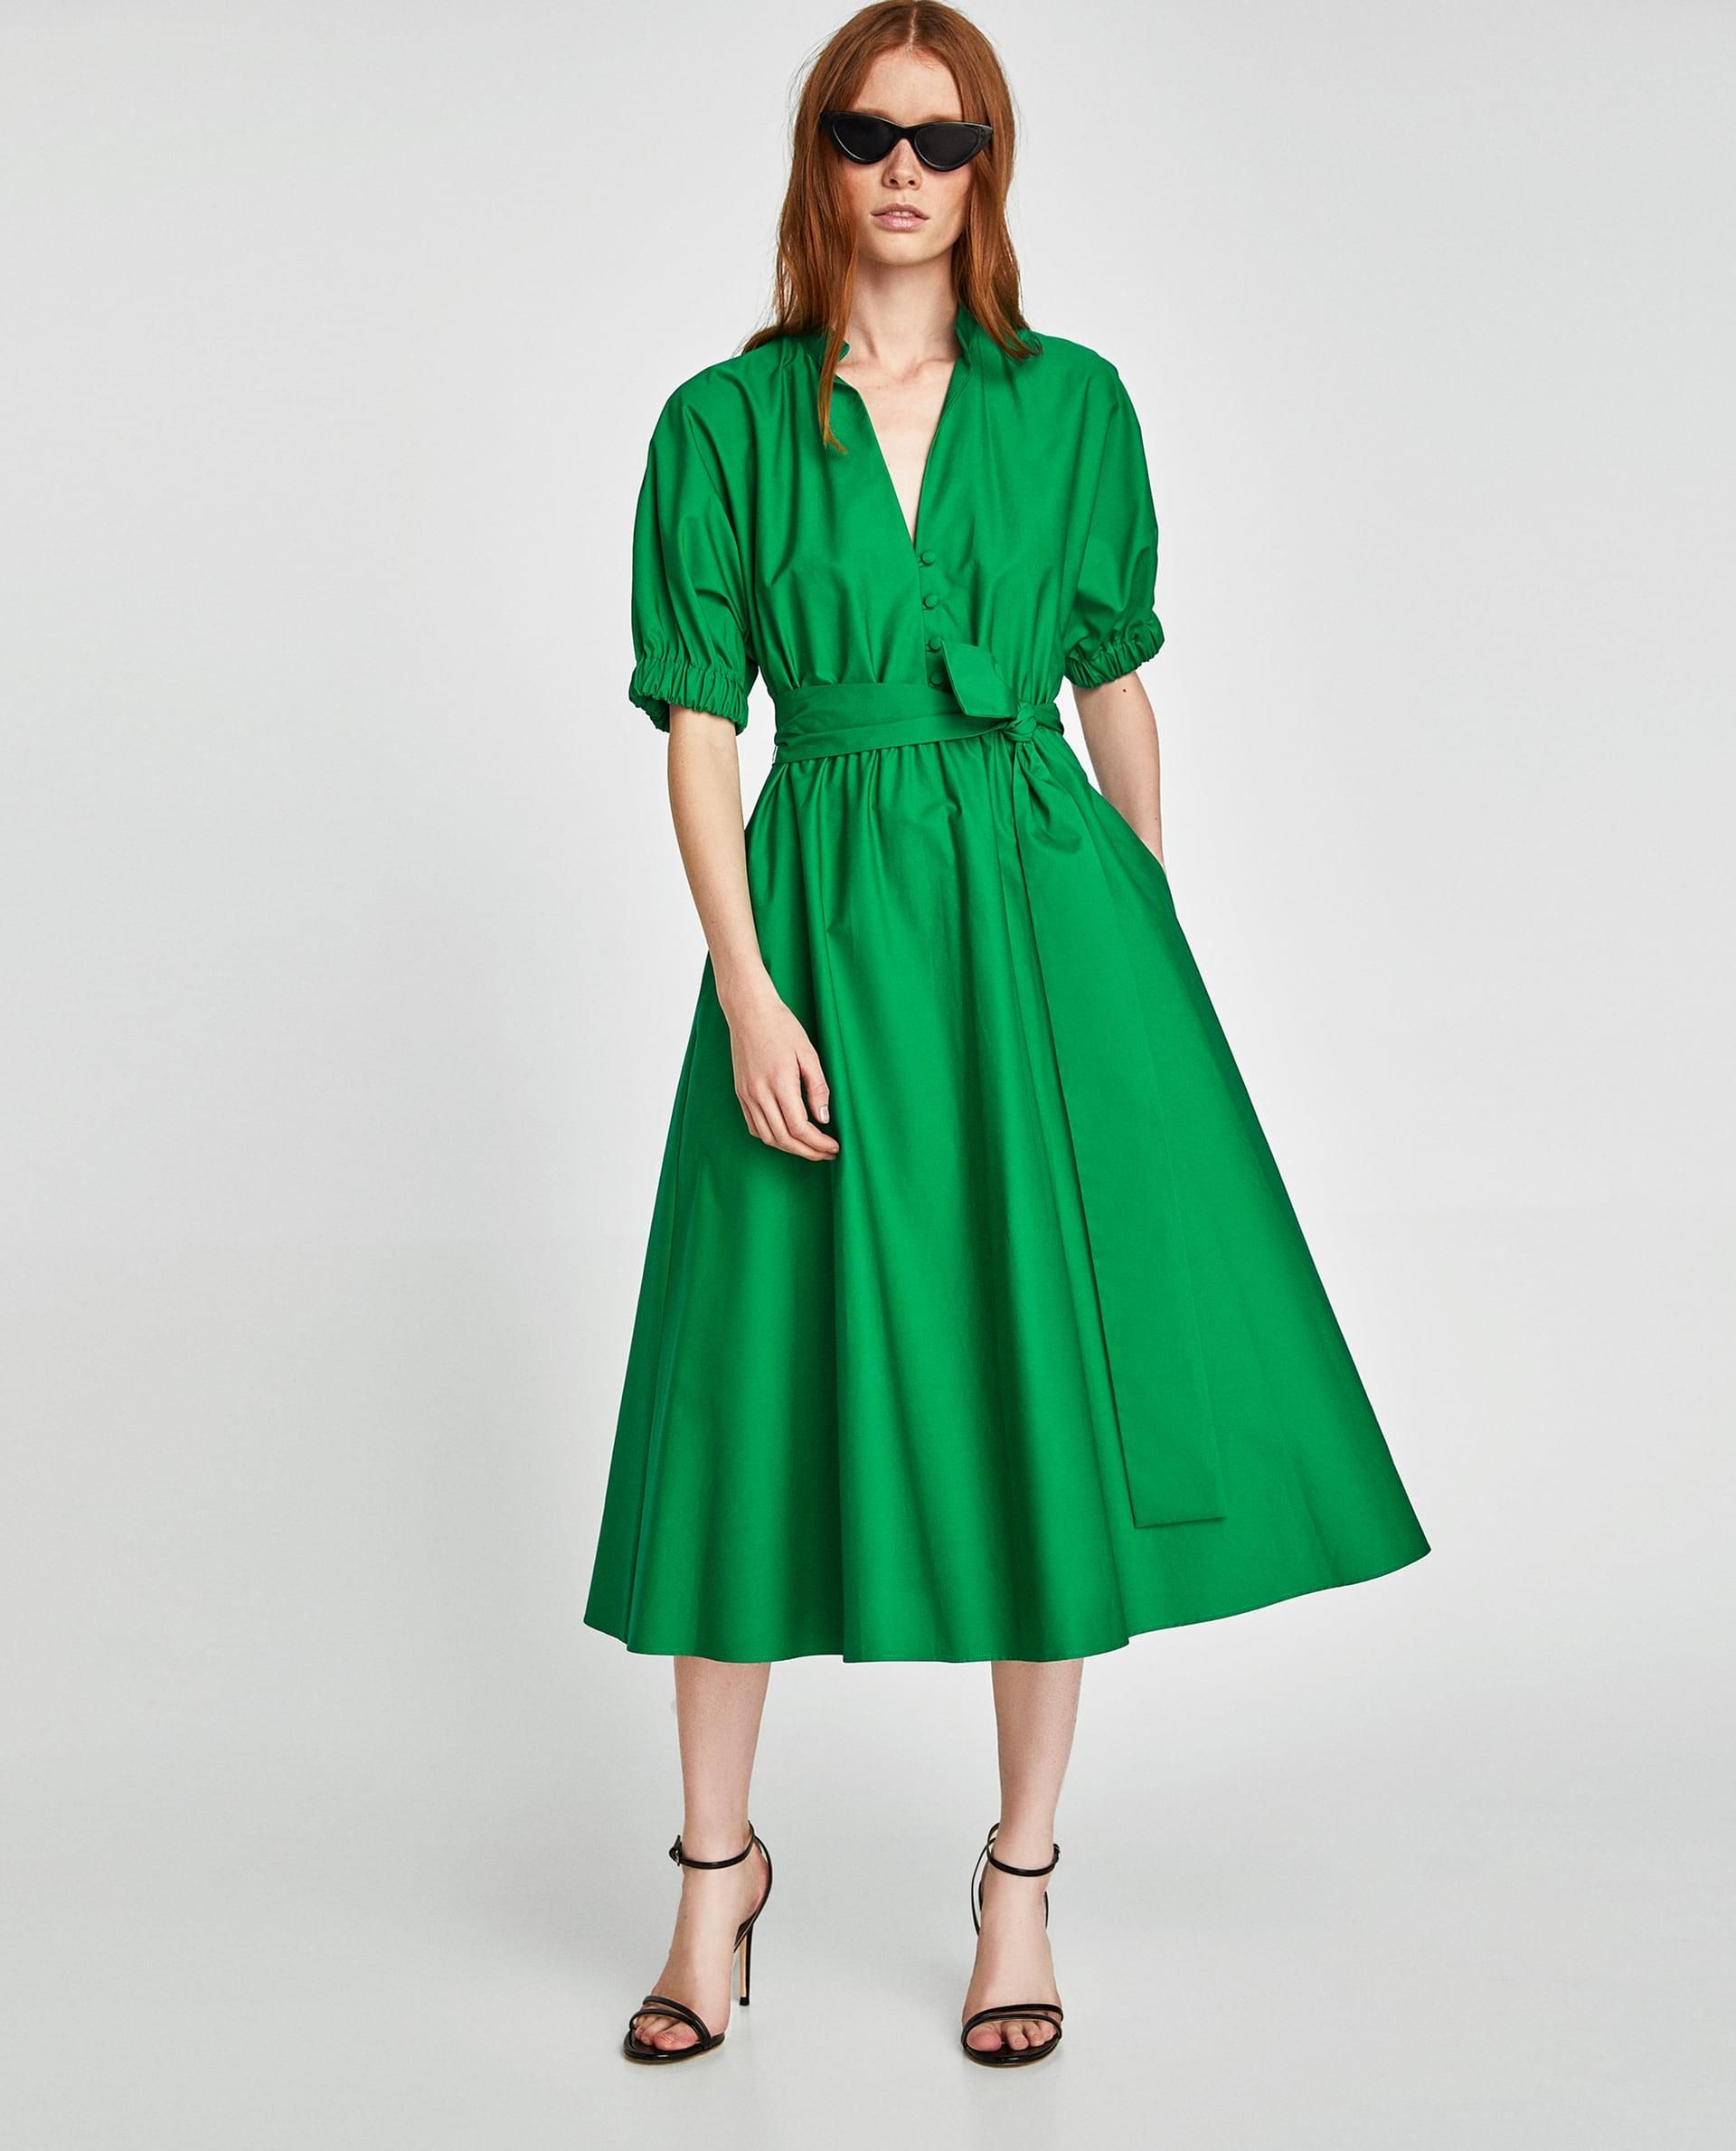 836830de Midi Dress With Voluminous Sleeves // 69.90 USD // Zara // Midi dress with  high collar and V-neck front. Short voluminous sleeves and elastic cuffs.